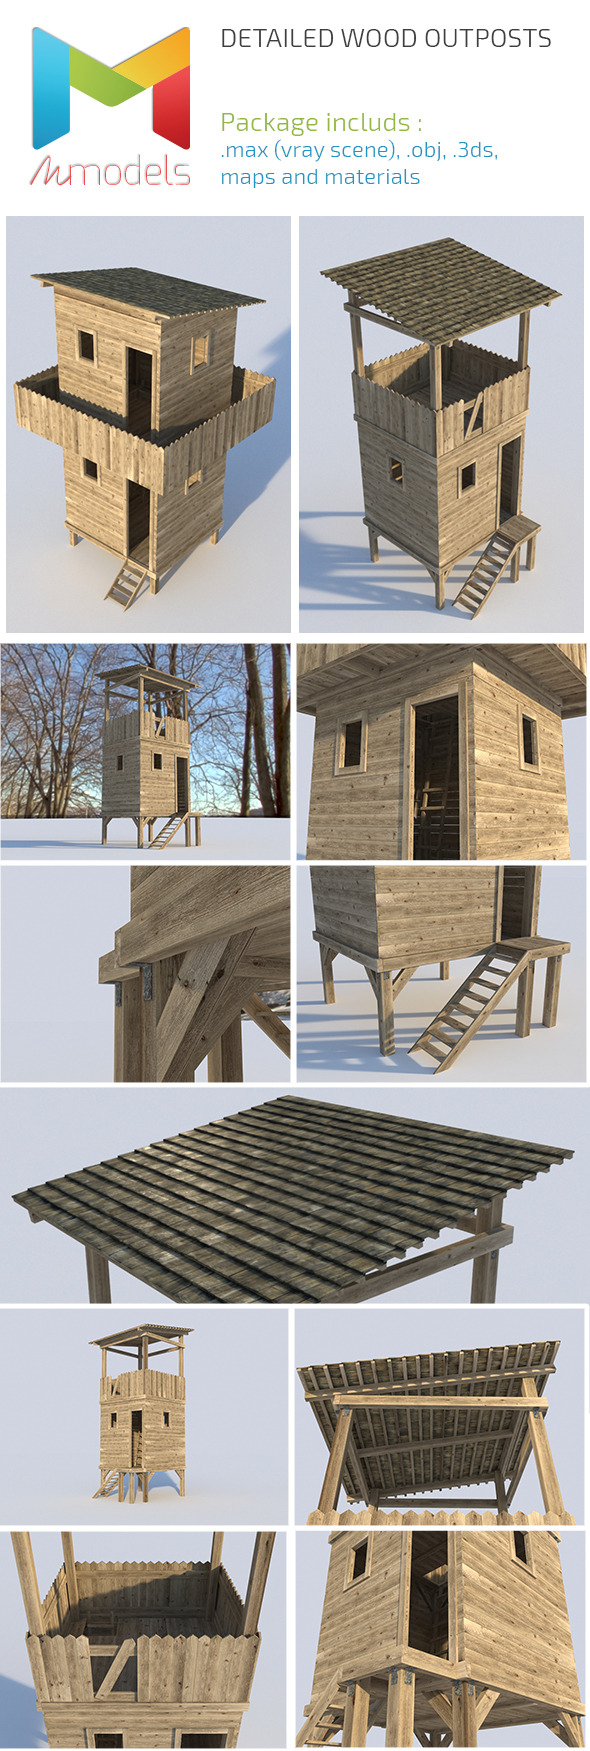 Realistic Wooden Outposts - 3DOcean Item for Sale